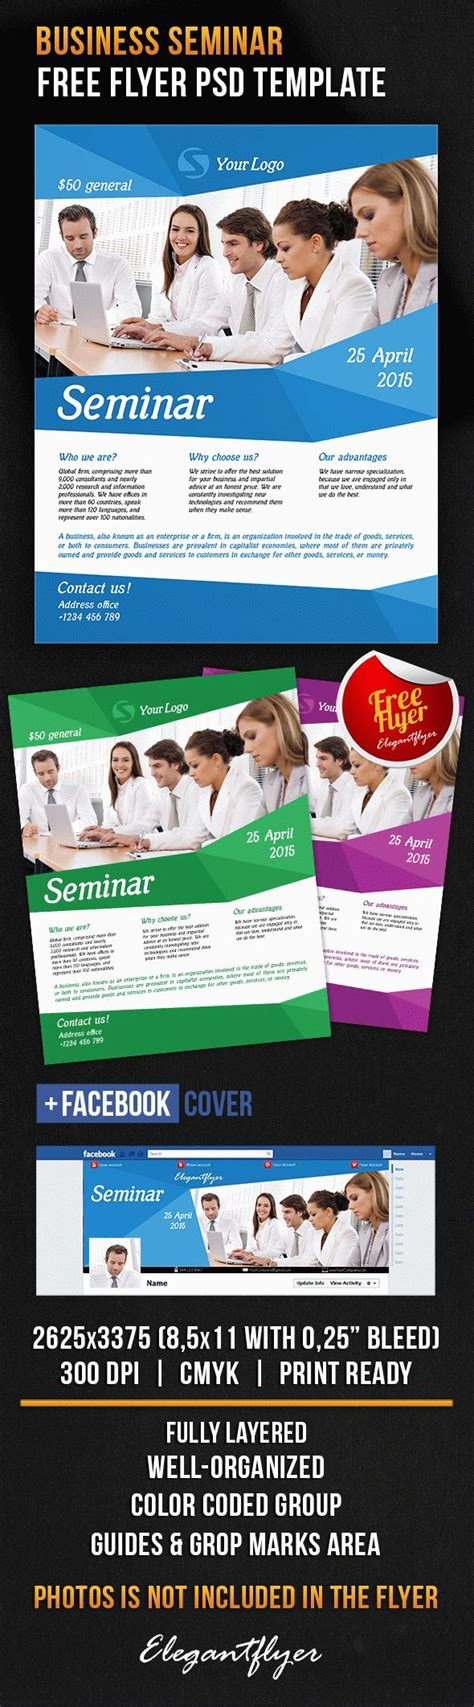 business seminar free flyer psd template facebook